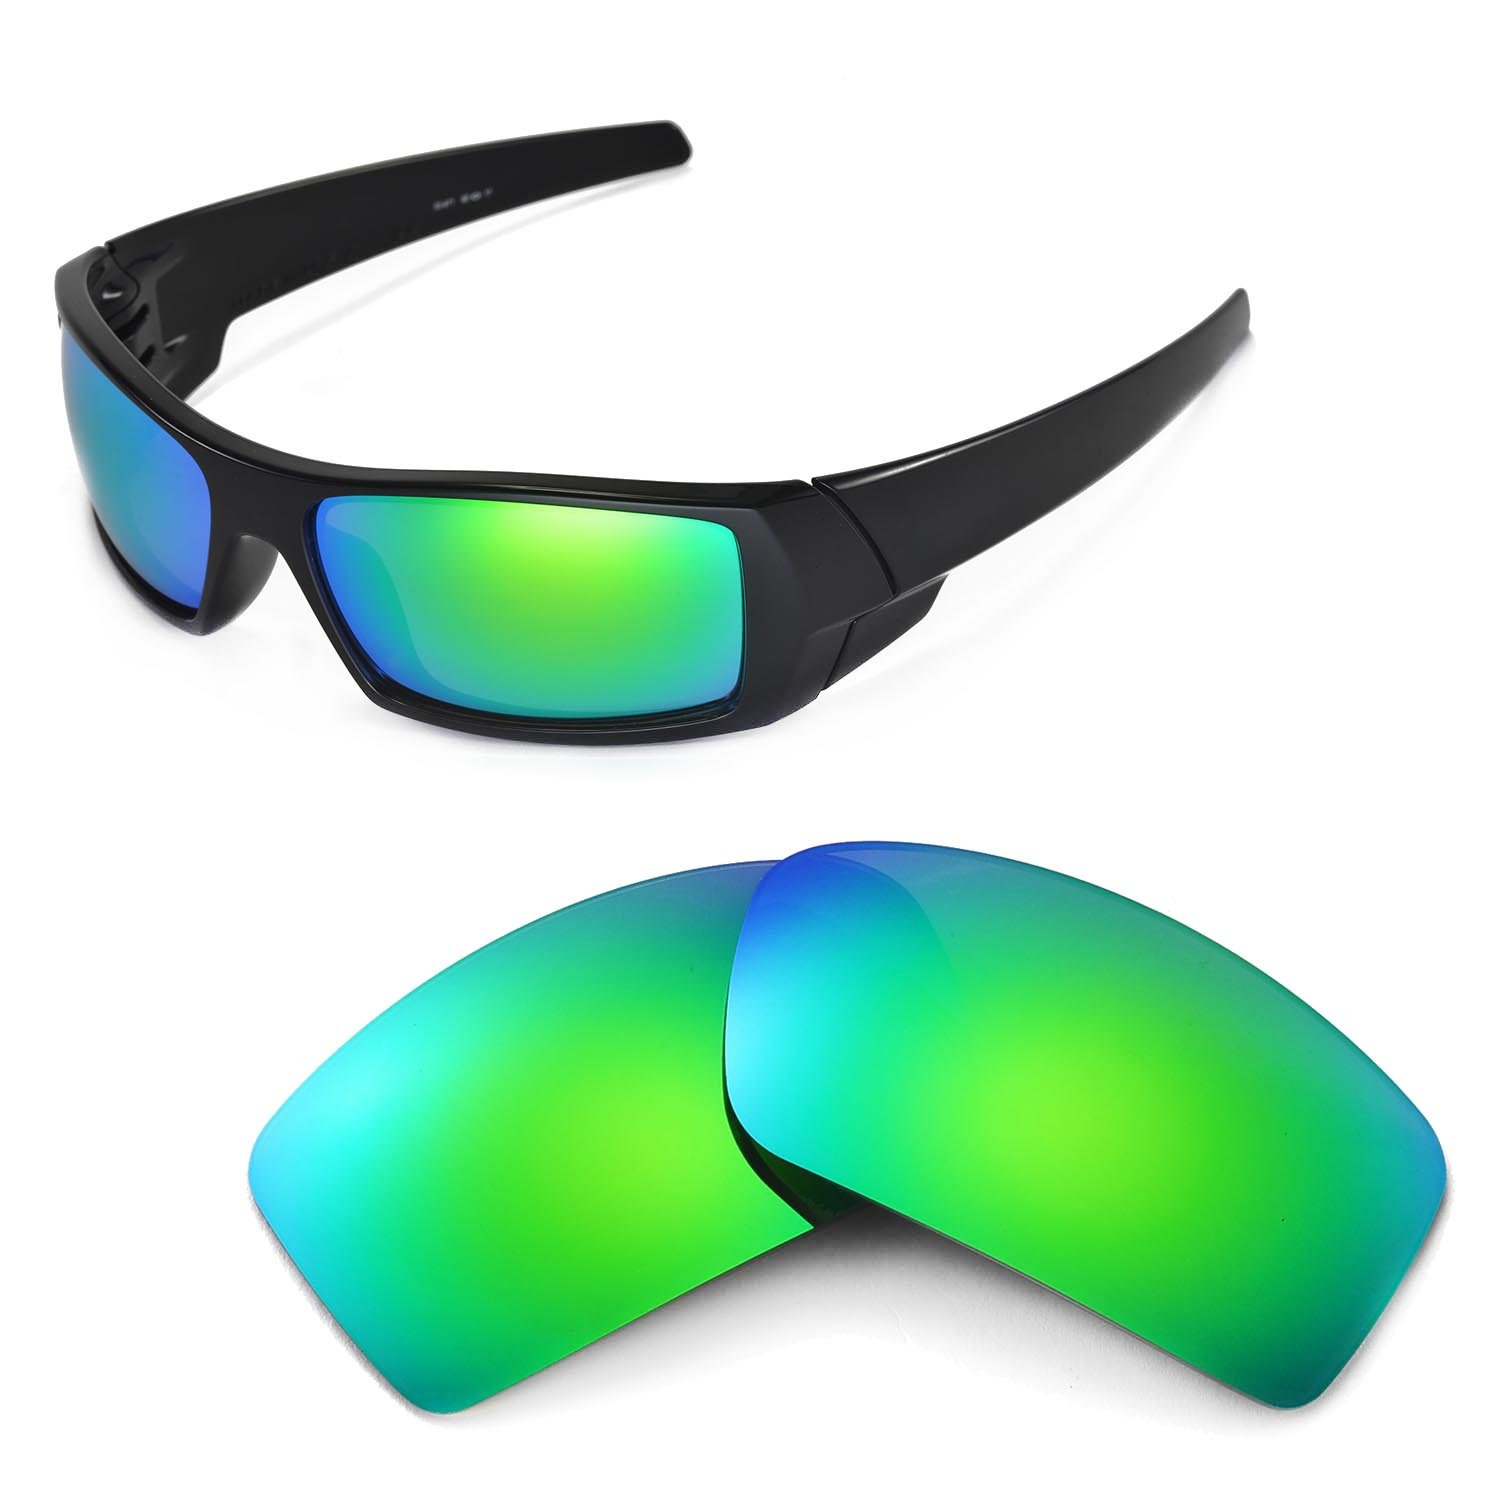 25a4e982cd Walleva Replacement Lenses for Oakley Gascan Sunglasses - 26 Options  Available product image